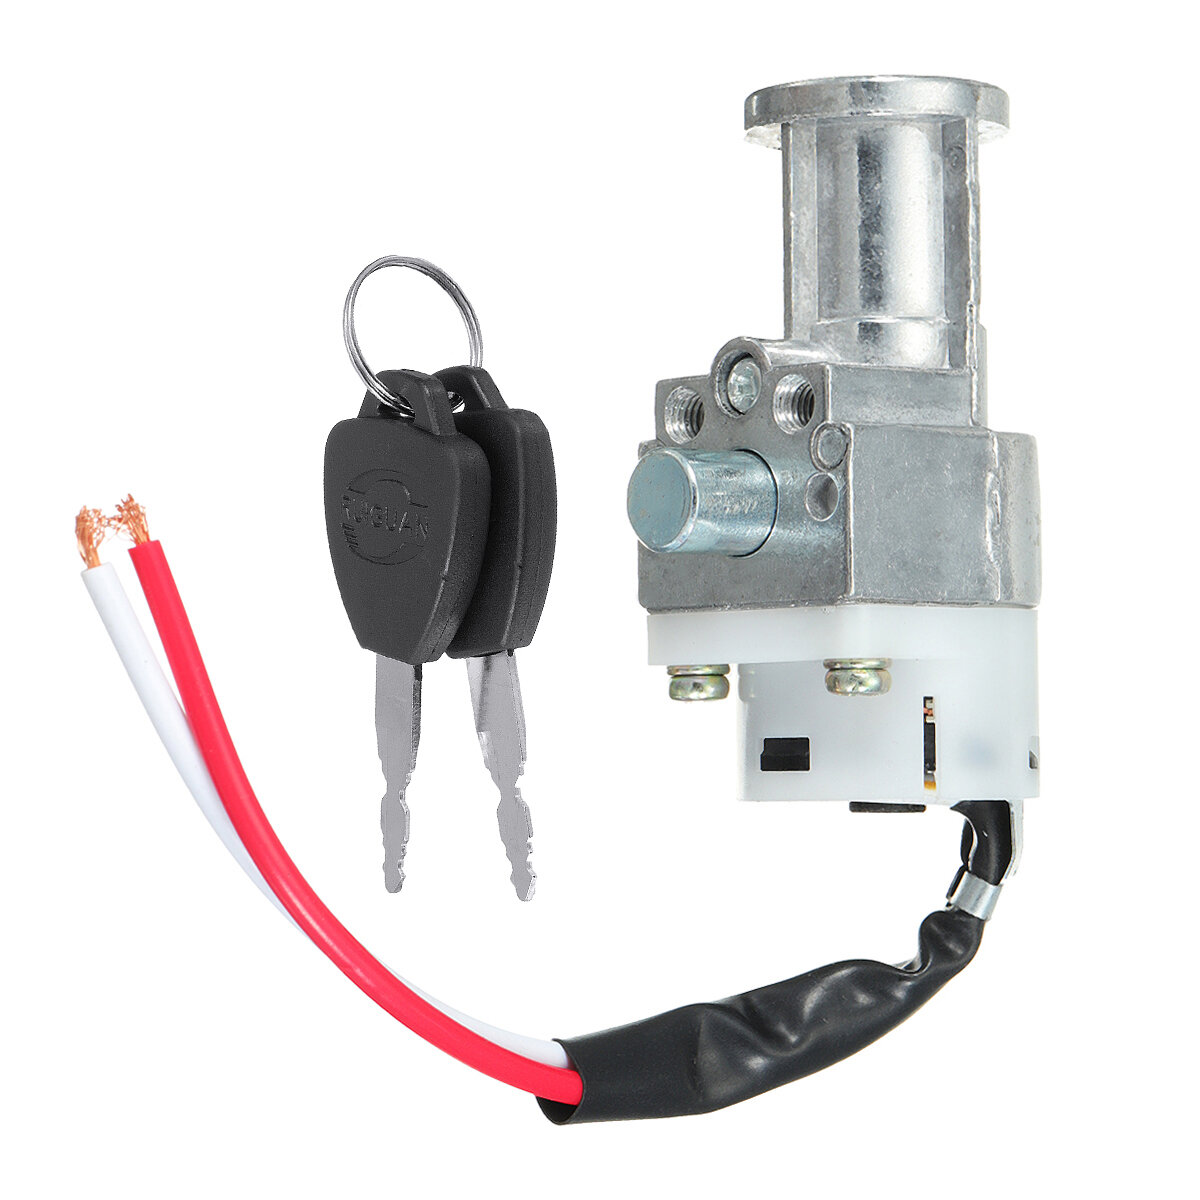 Is Only One Wire From Ignition Switch To The Ignition Coil And Module